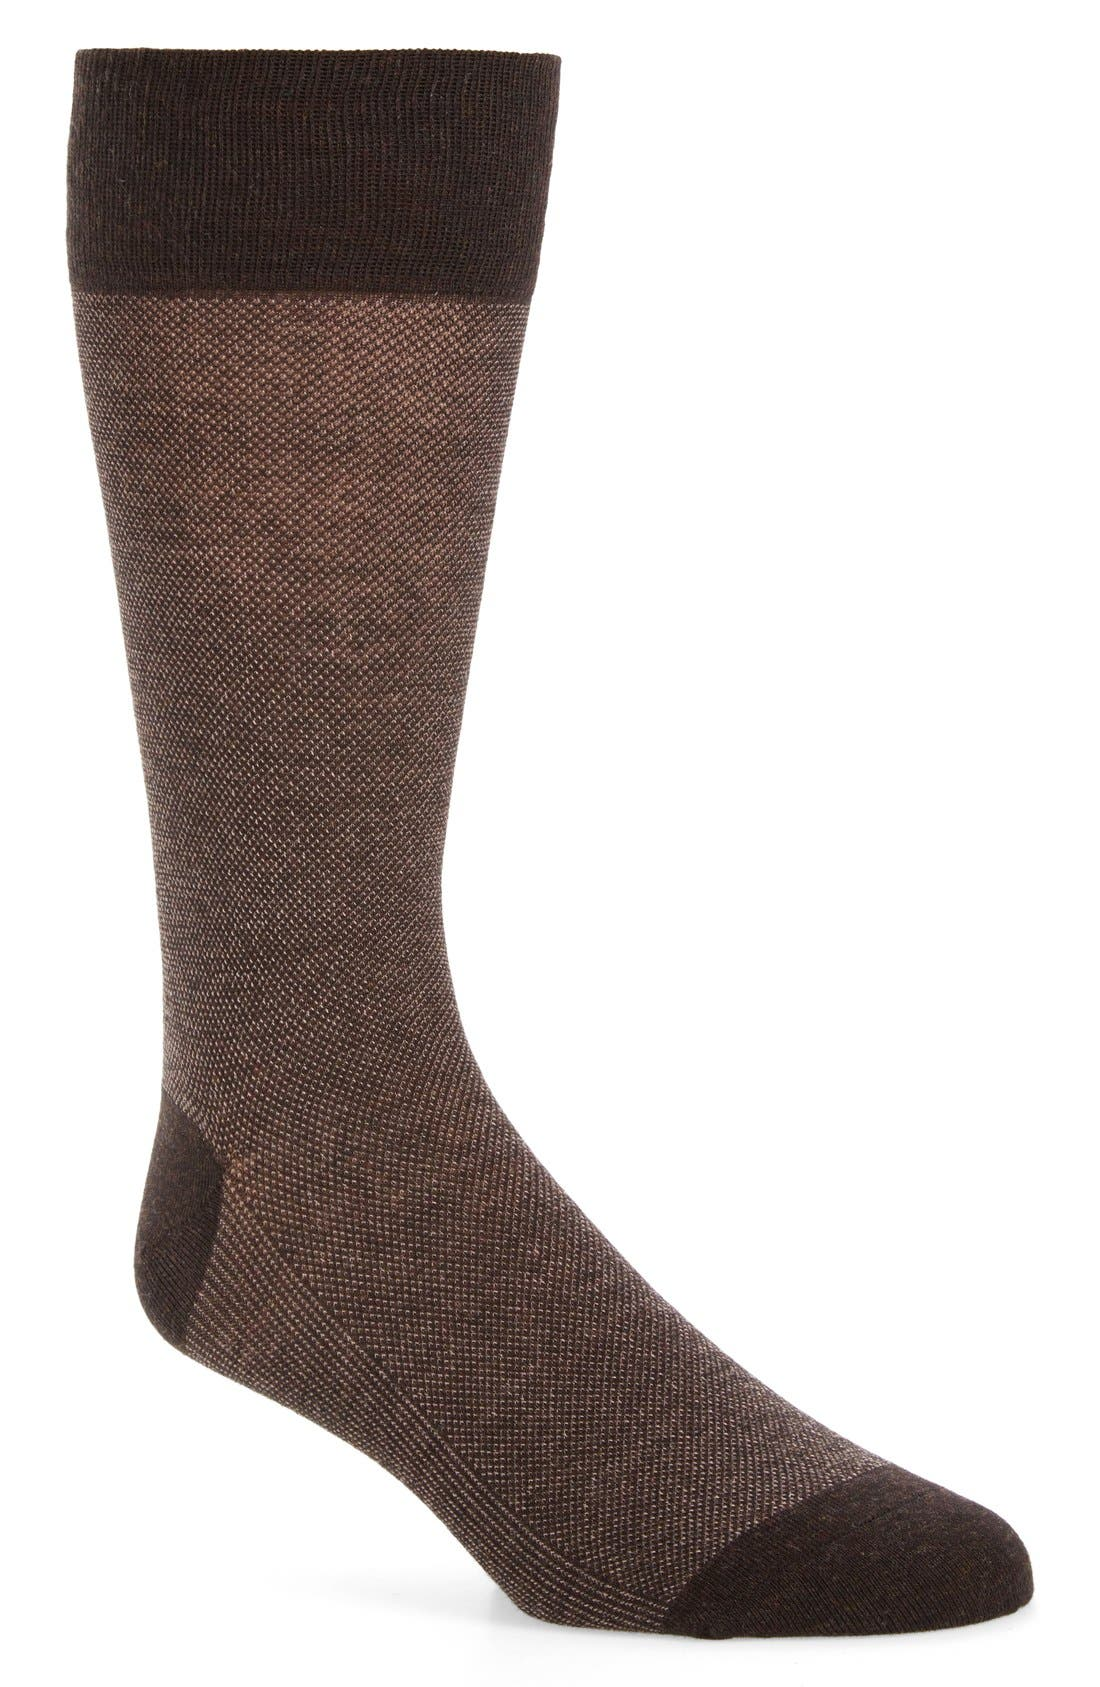 Alternate Image 1 Selected - Cole Haan Piqué Texture Crew Socks (3 for $30)